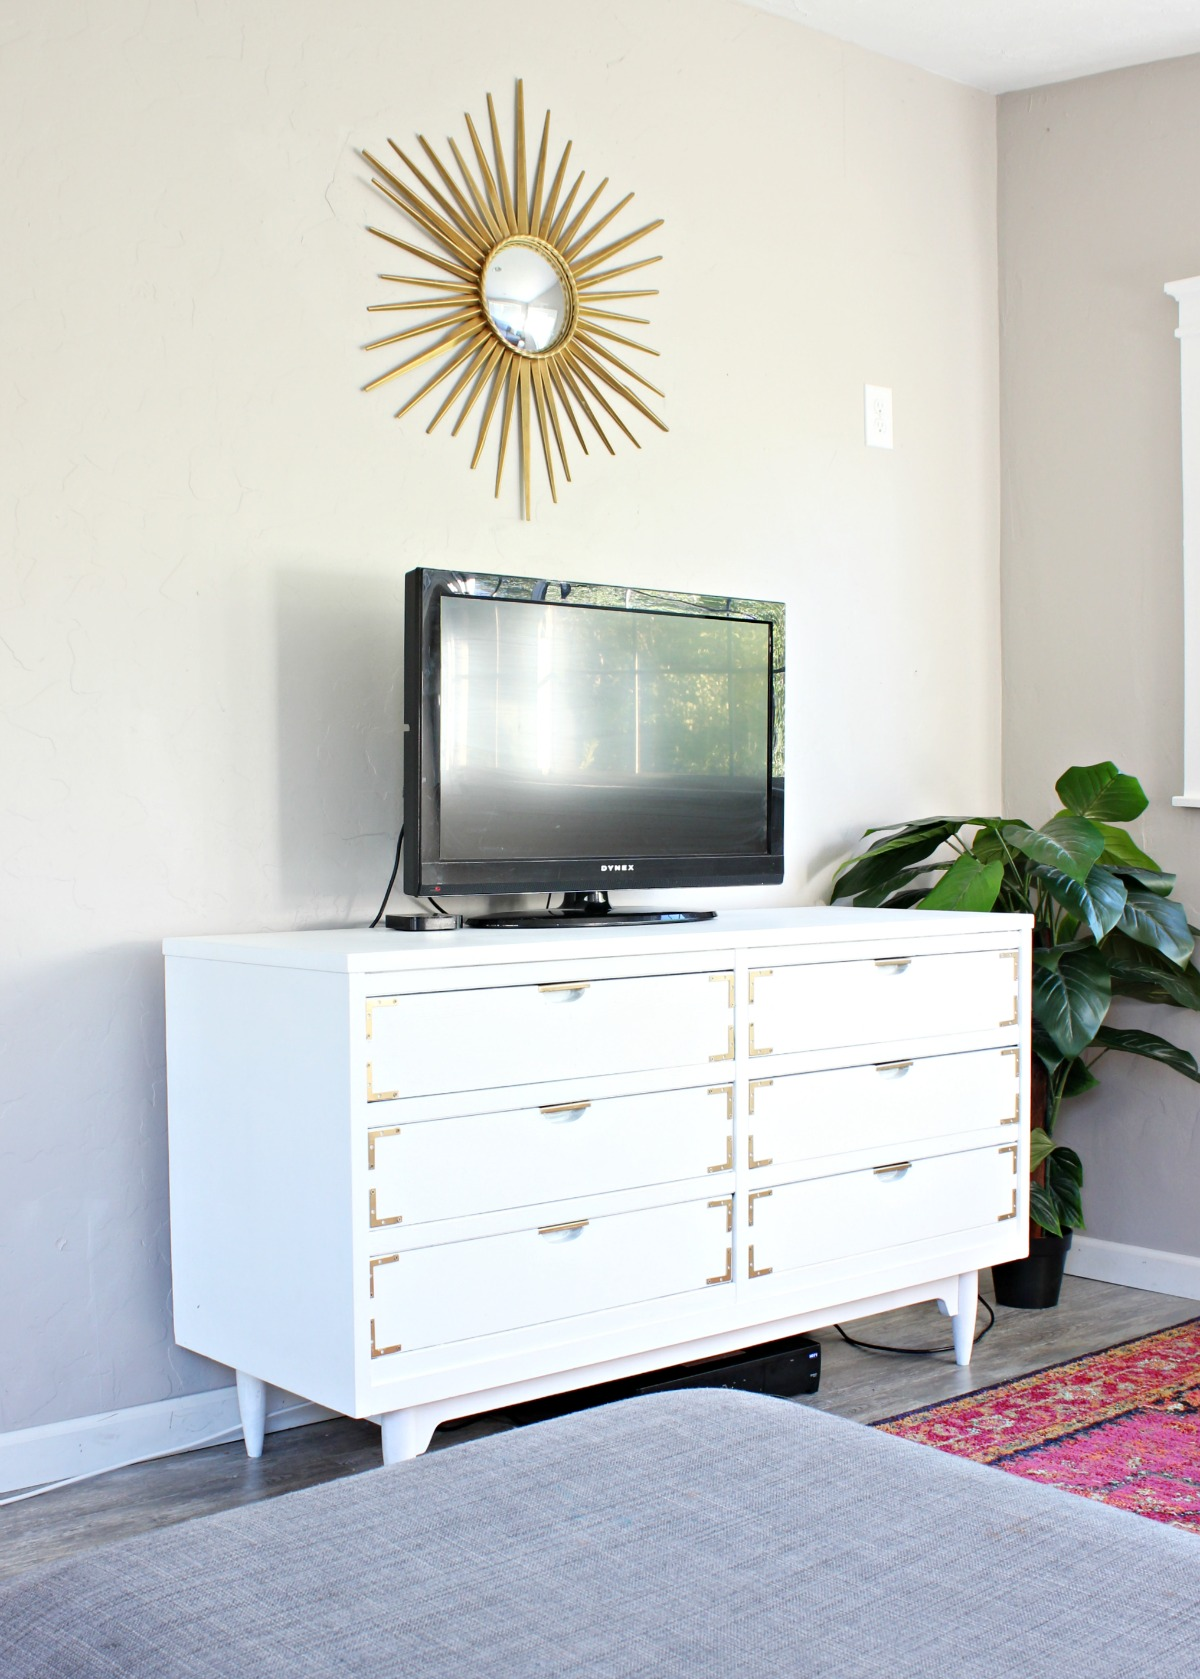 How To Paint A Dresser Inside The House